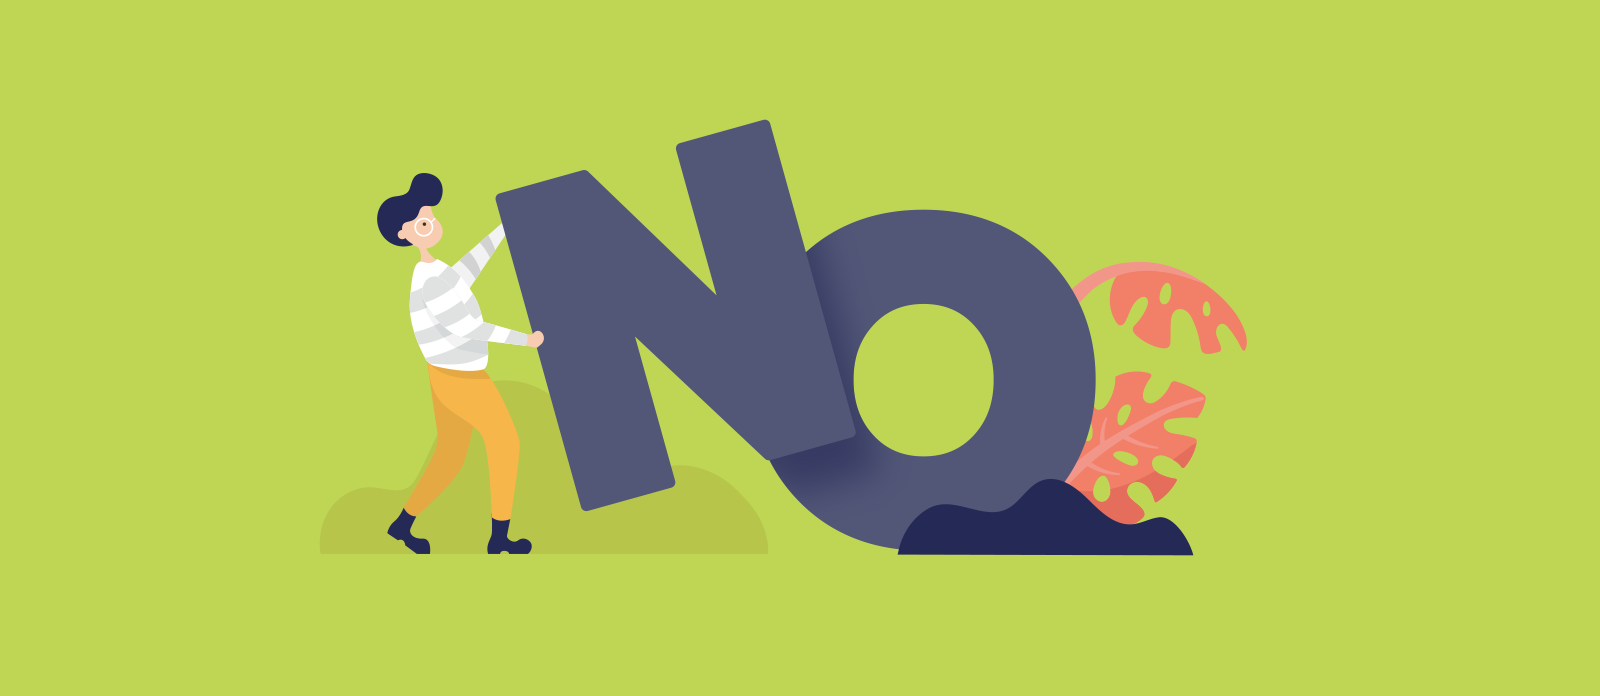 ways to say no nicely